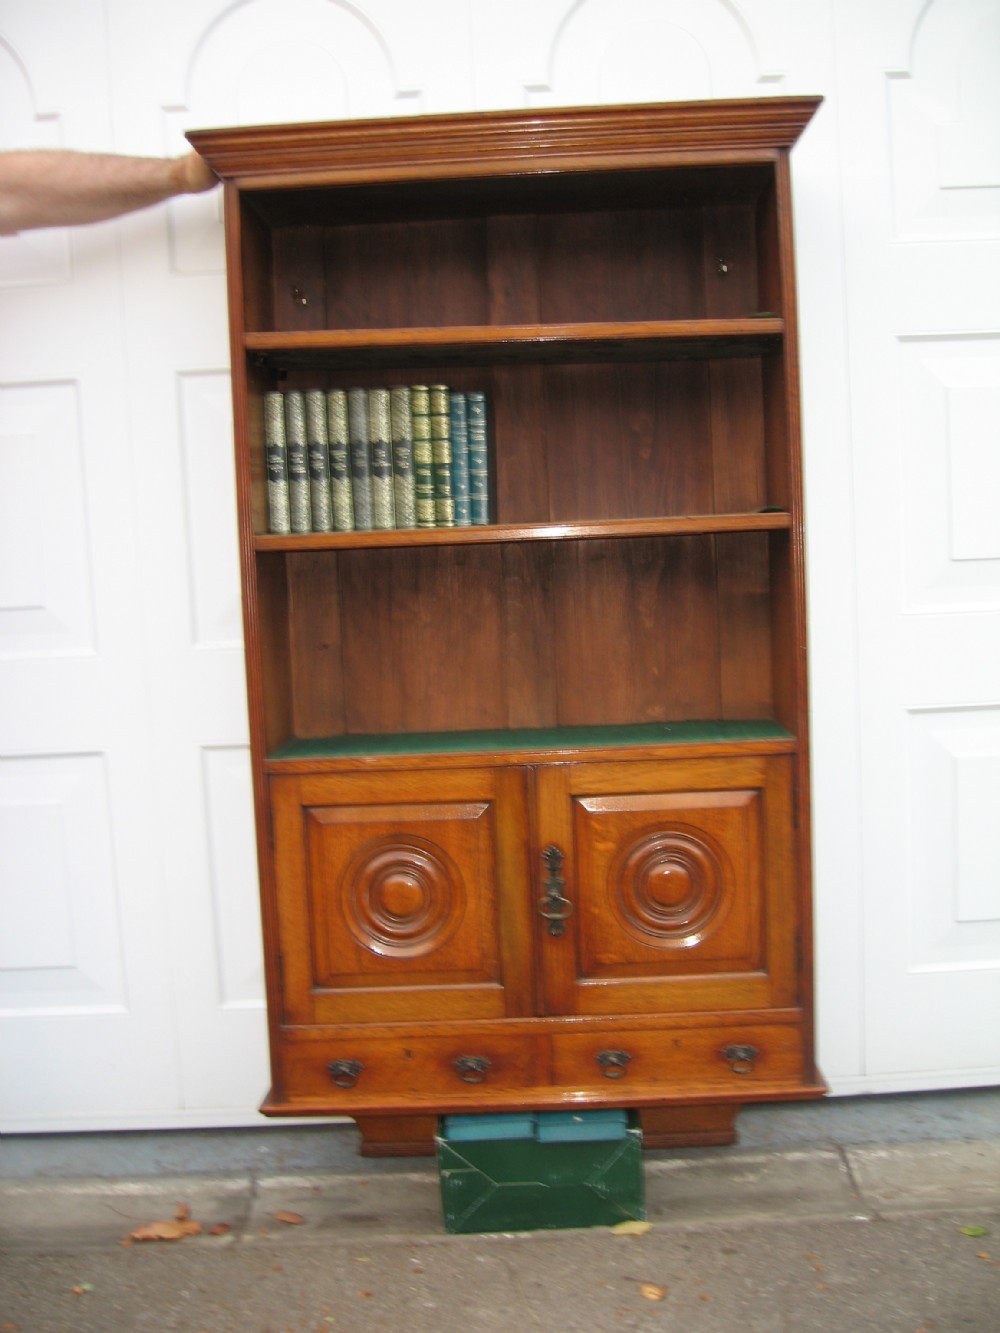 Victorian Bookcase in Wall images - Hdimagelib